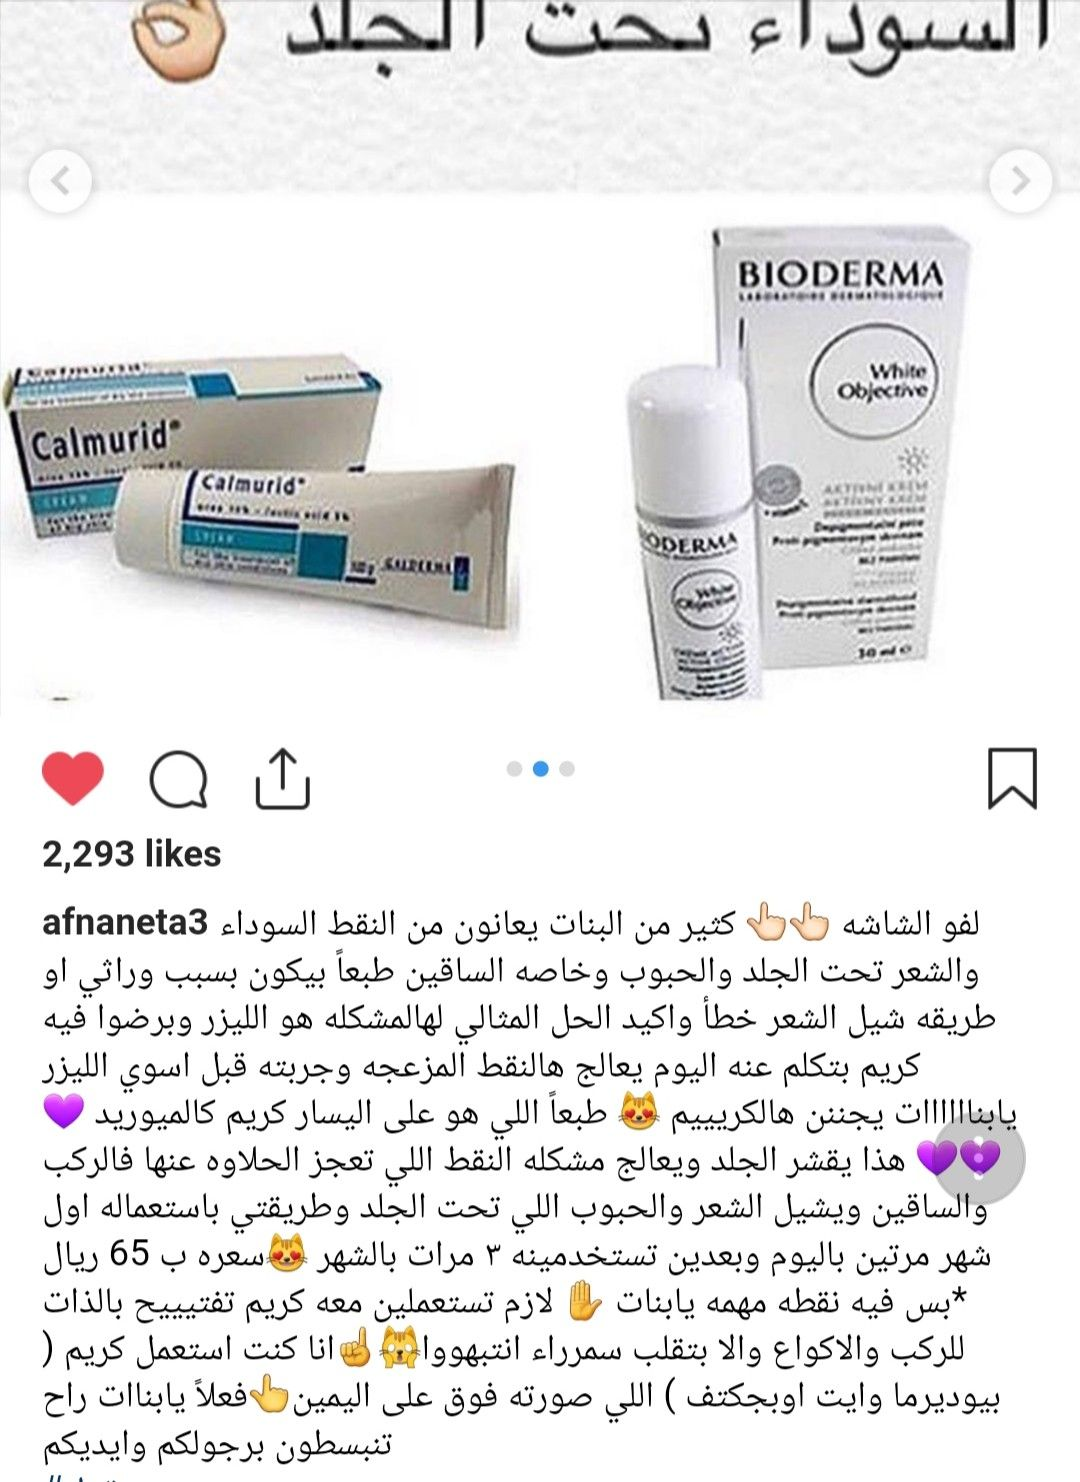 Pin by hnouf abdullh on Beauty | Beauty skin care routine